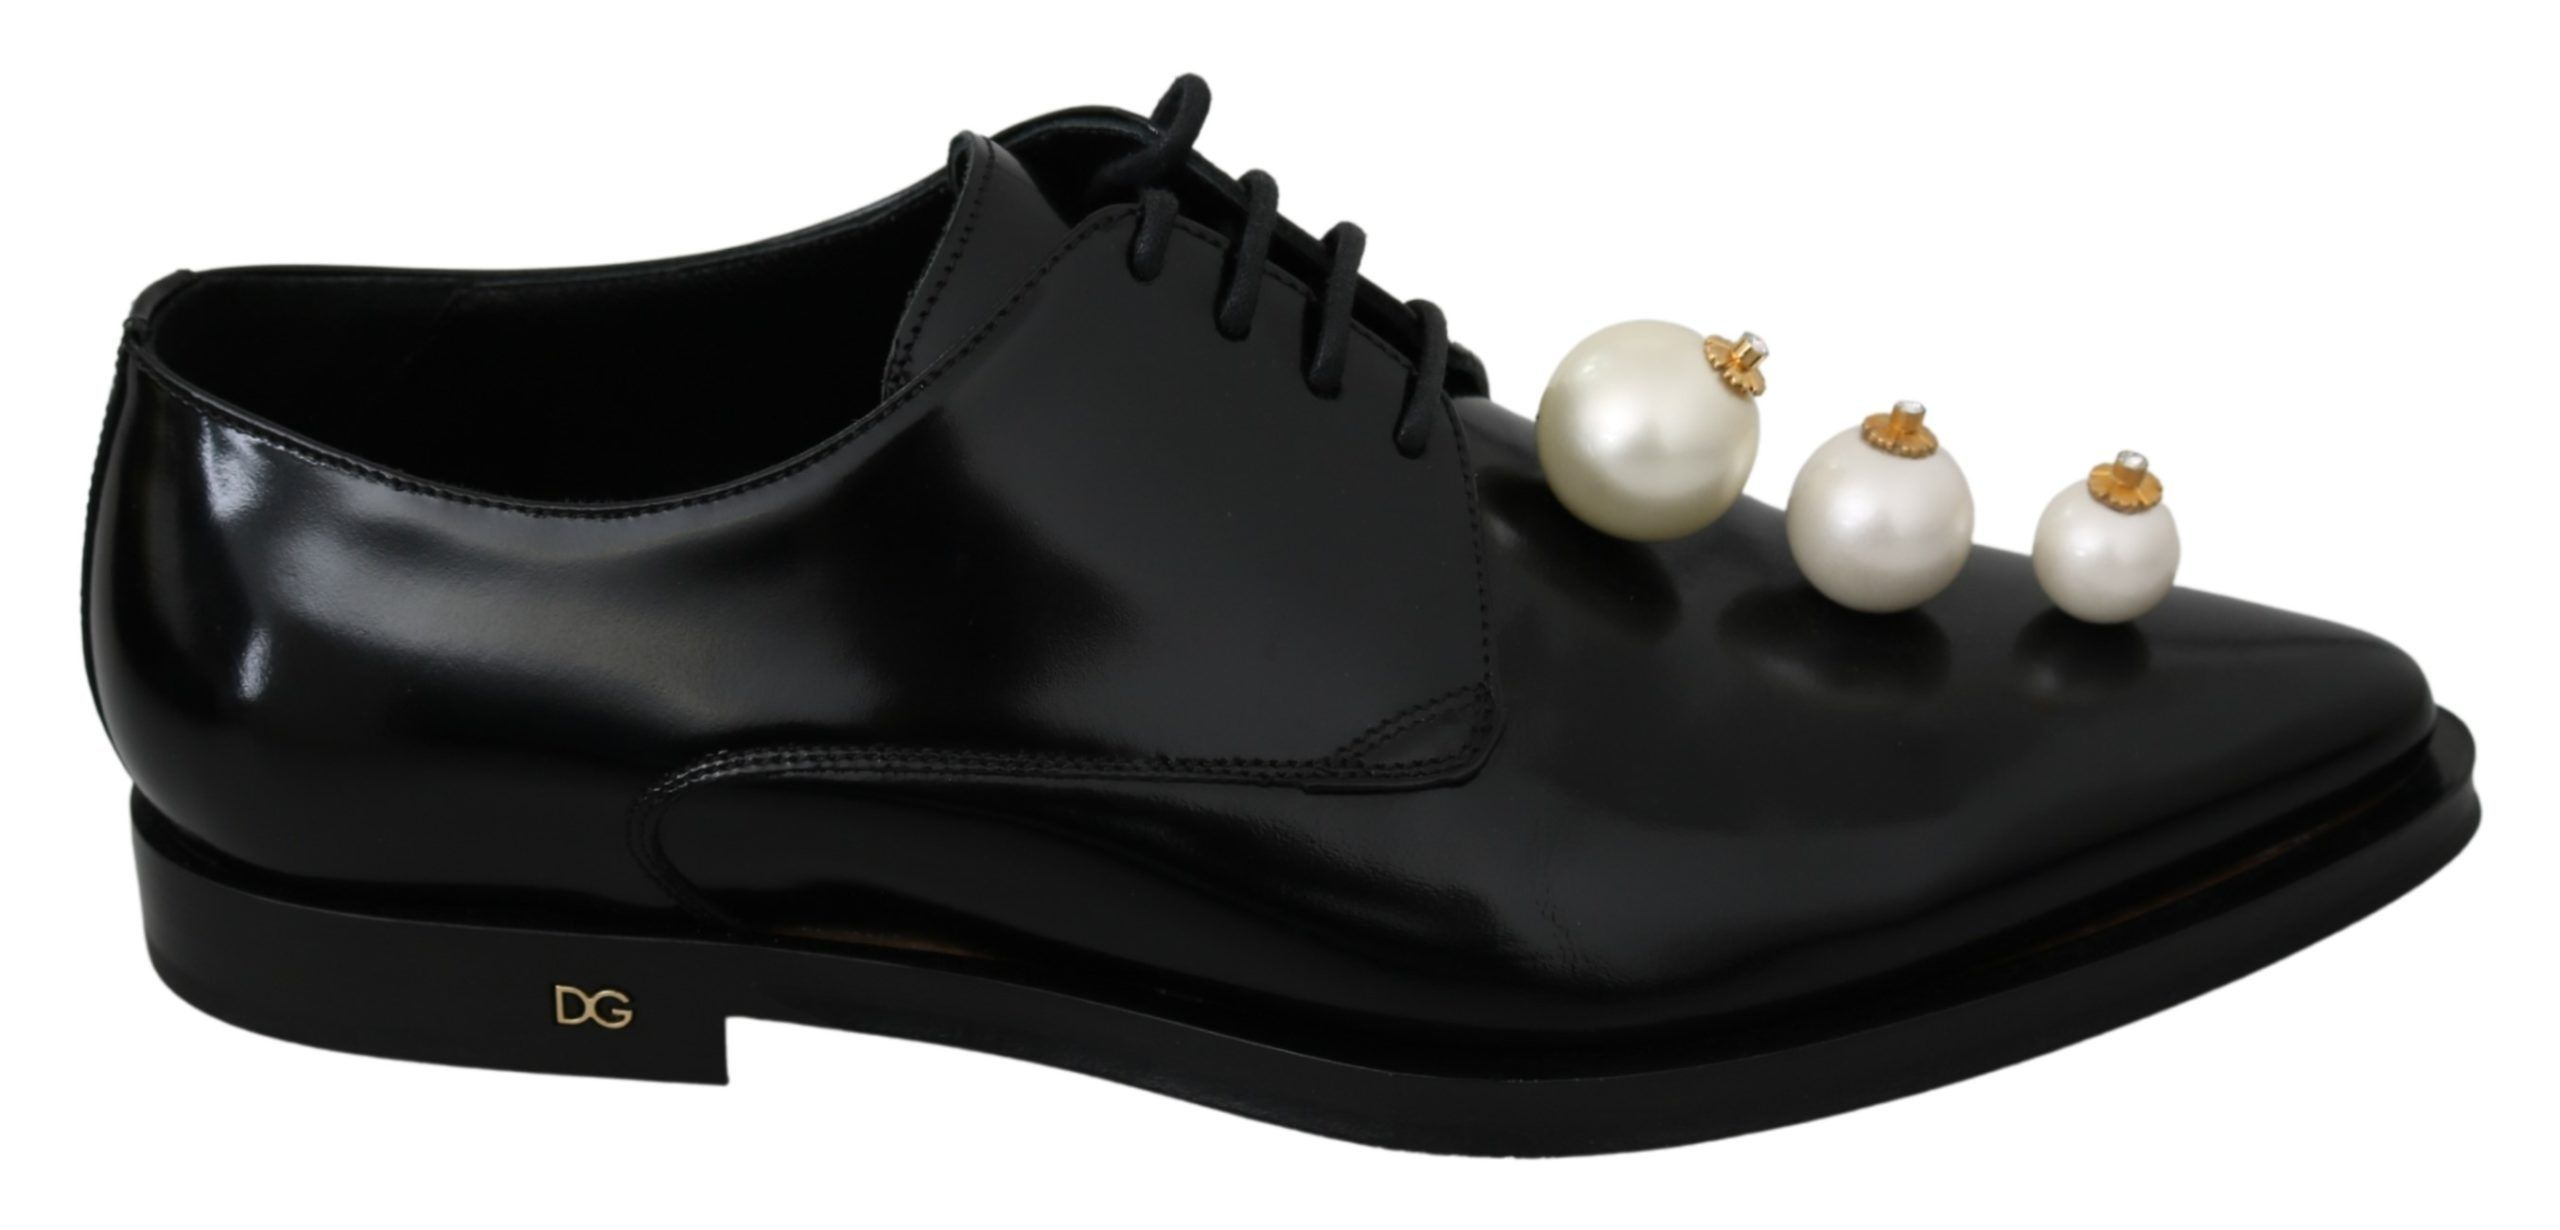 Dolce & Gabbana Black Leather Pearl Studs Lace Up Formal Shoes – EU39/US8.5